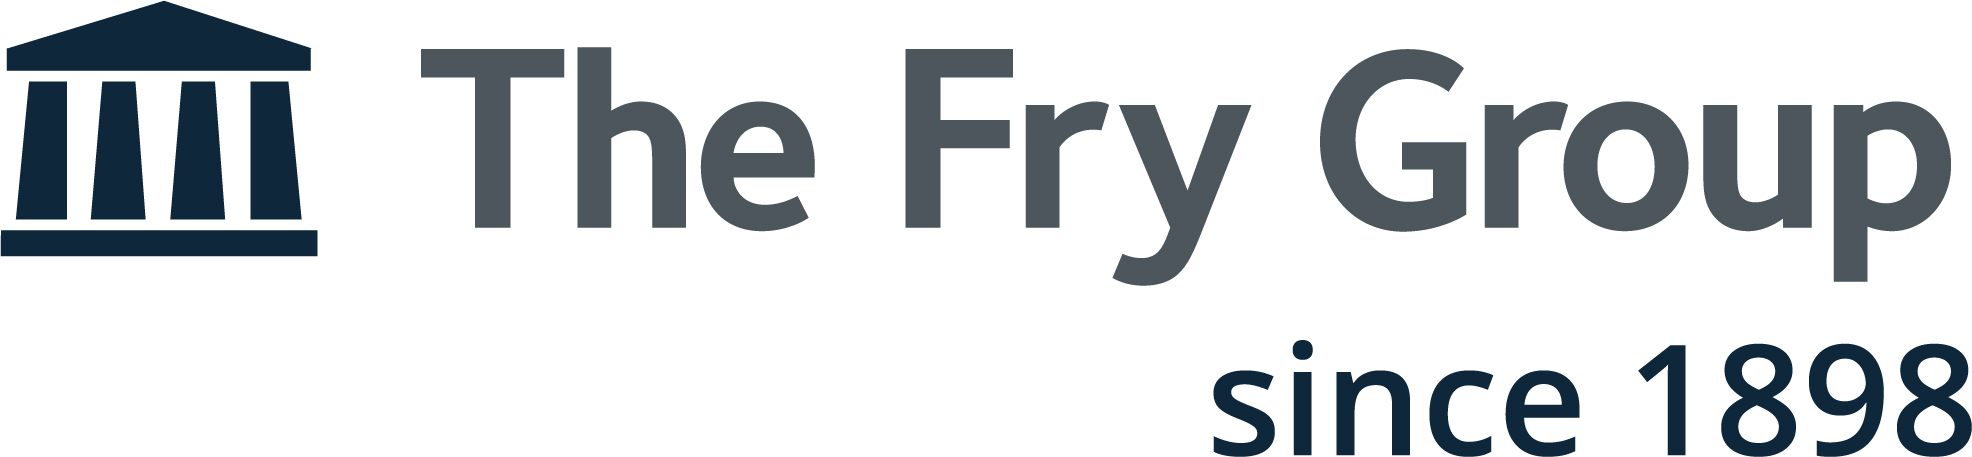 Copy of The Fry Group